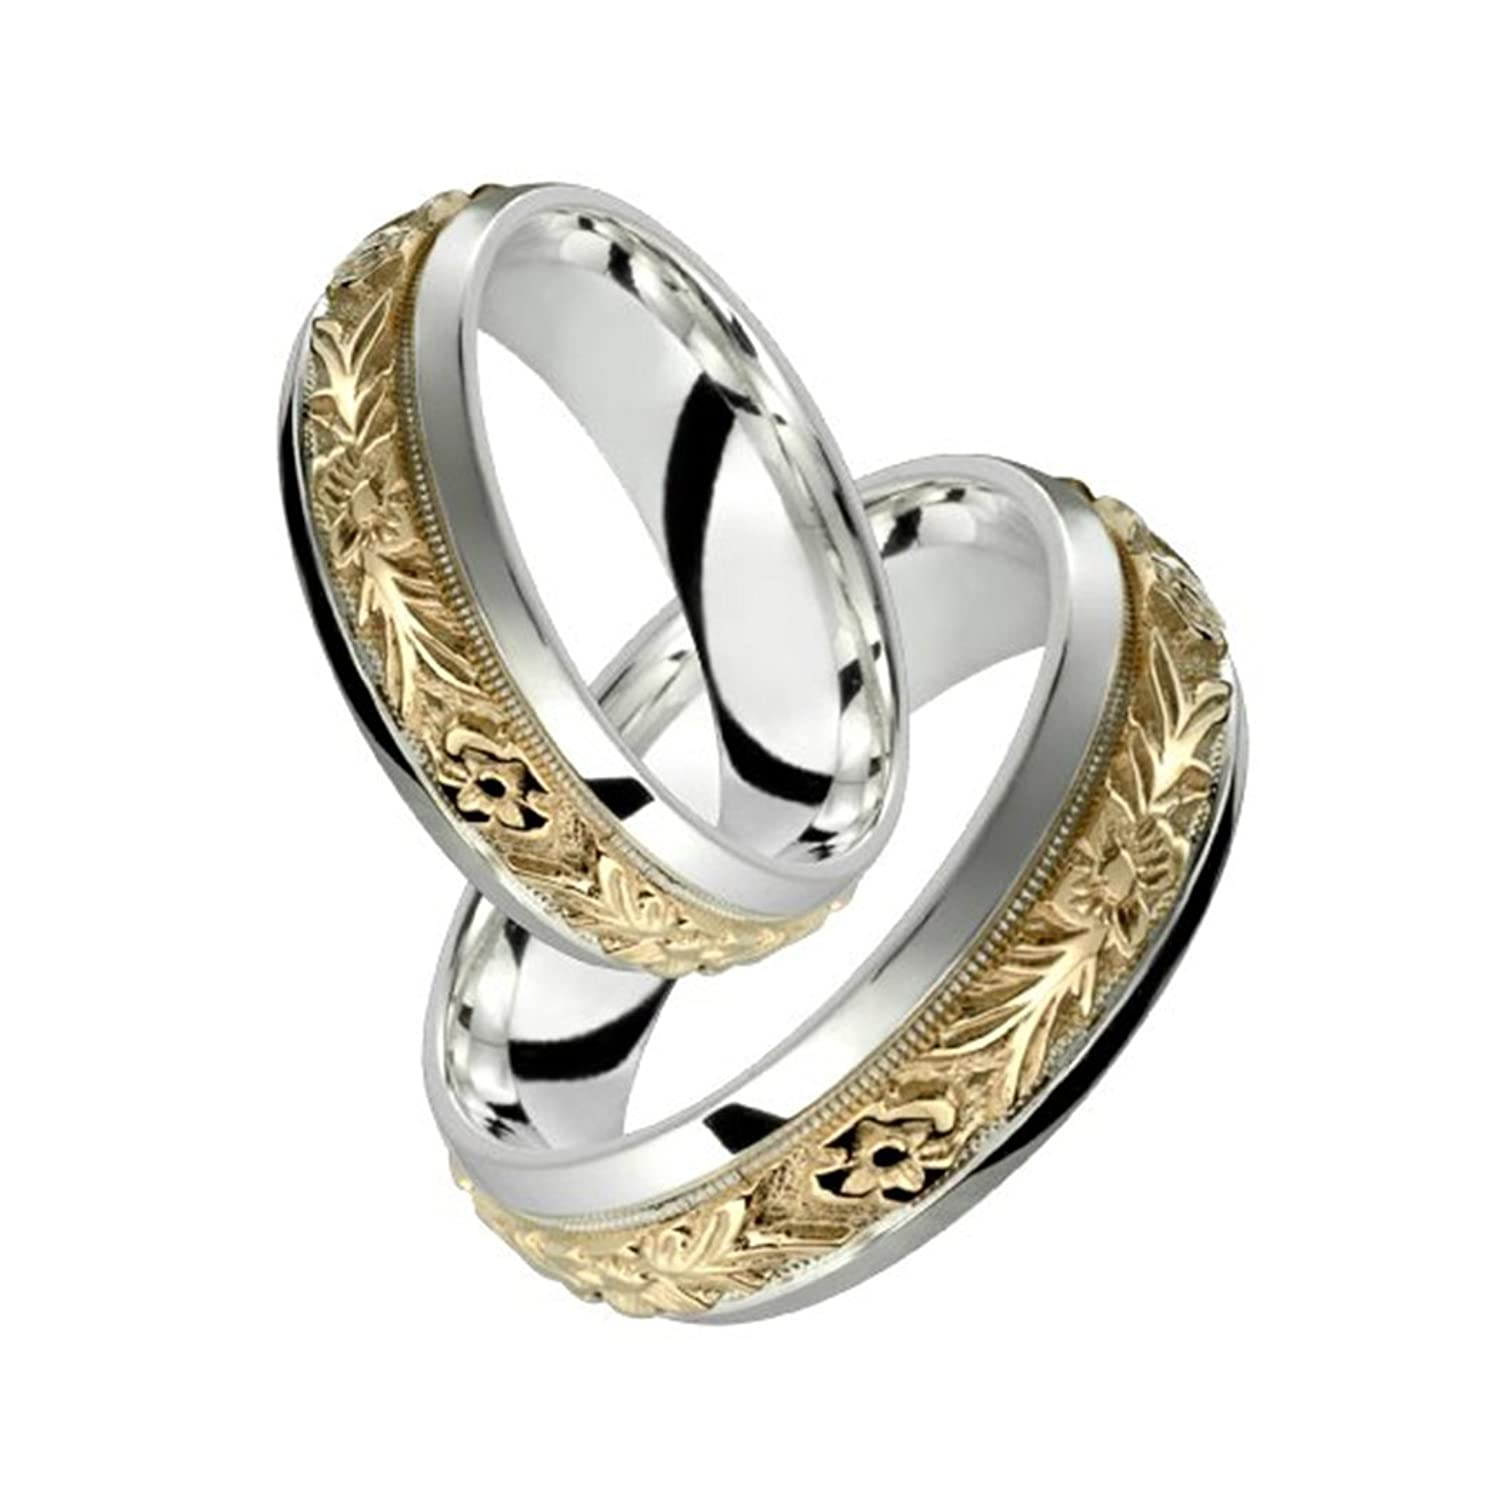 floral zoom neoclassical il wedding tone touch of rings listing fullxfull jqmg two gold band